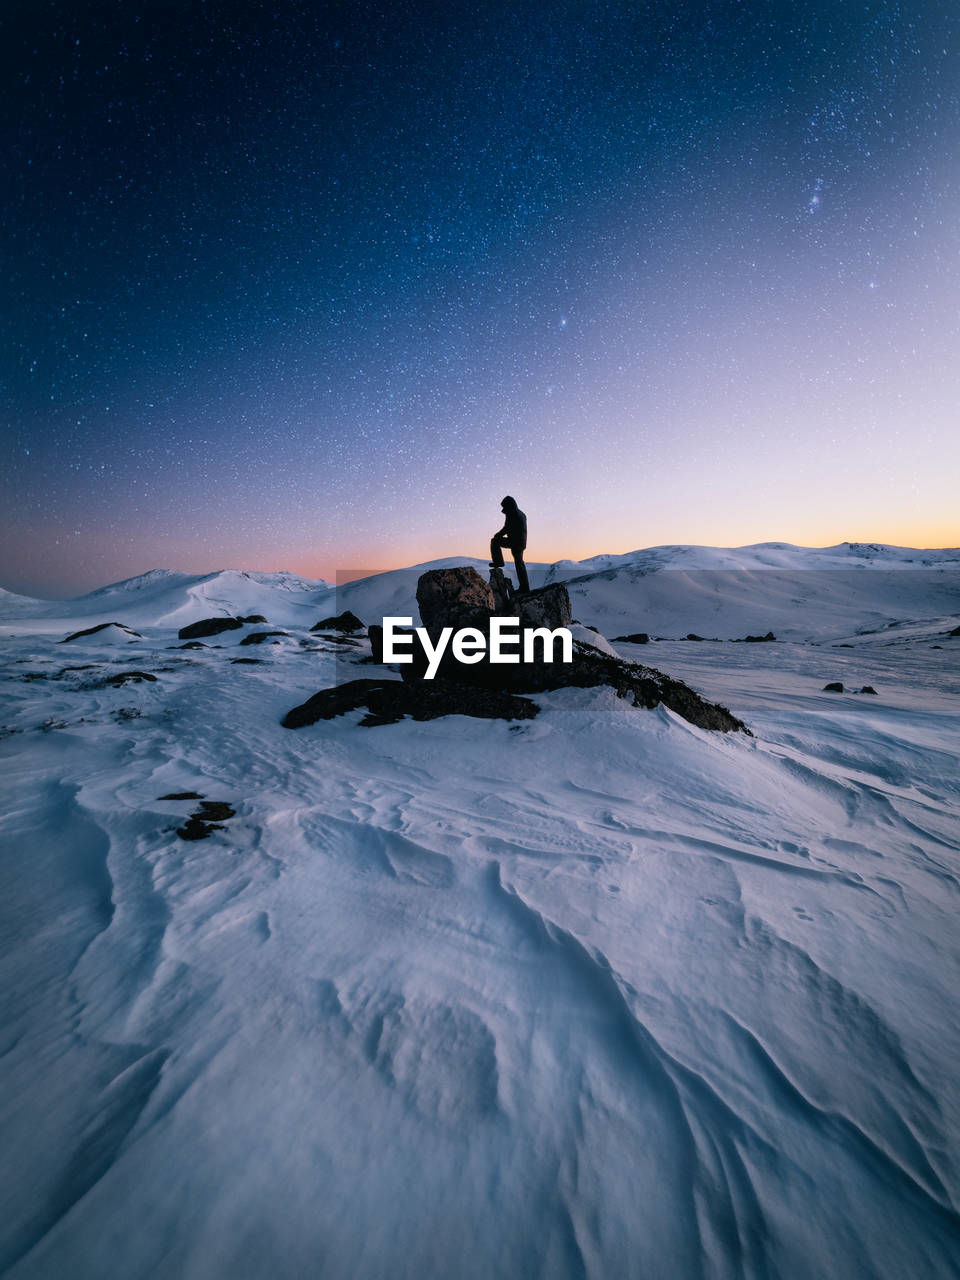 sky, real people, beauty in nature, one person, leisure activity, scenics - nature, lifestyles, nature, tranquility, cold temperature, winter, tranquil scene, star - space, astronomy, sitting, land, snow, water, outdoors